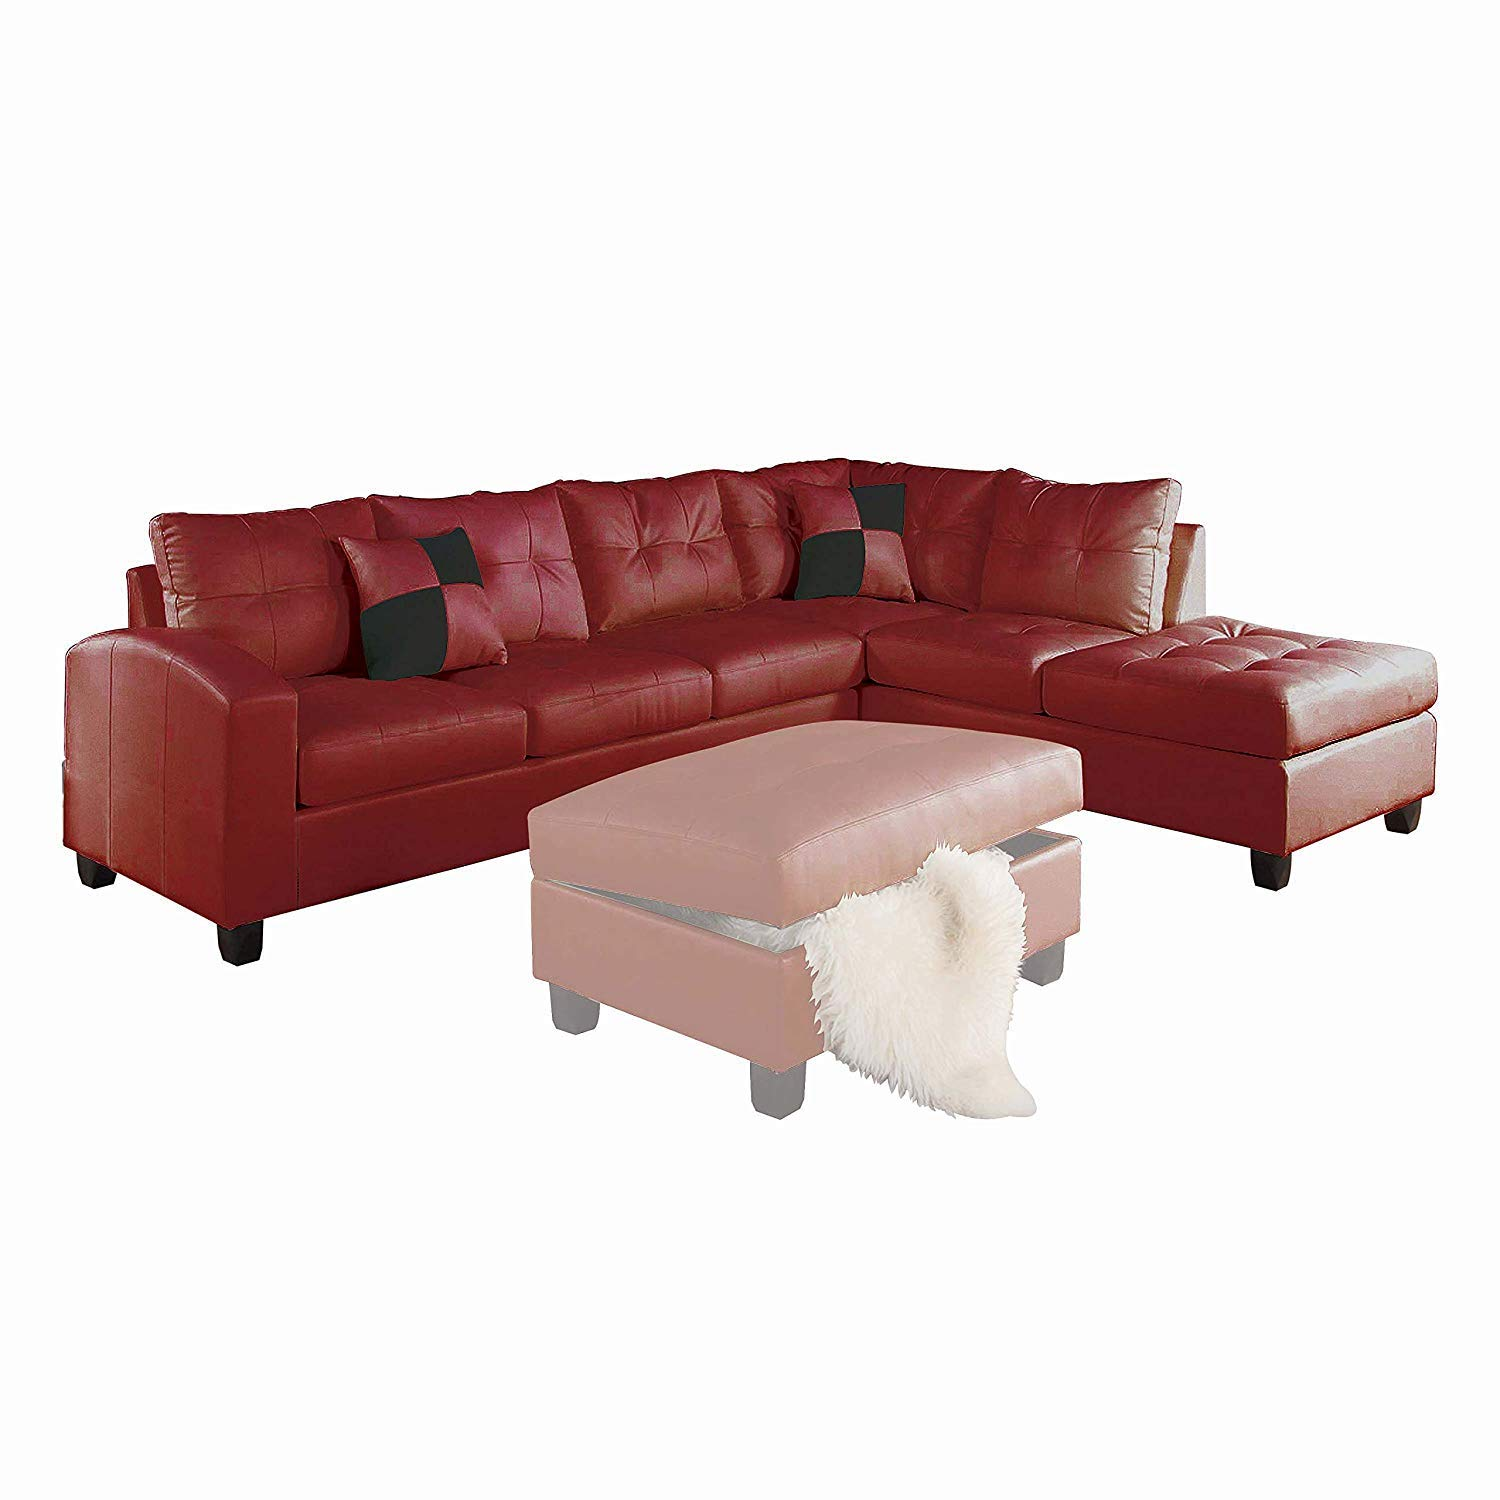 amazon com acme kiva red bonded leather reversible sectional sofa rh amazon com Bonded Leather Sofa Repair Red Bonded Leather Sofa